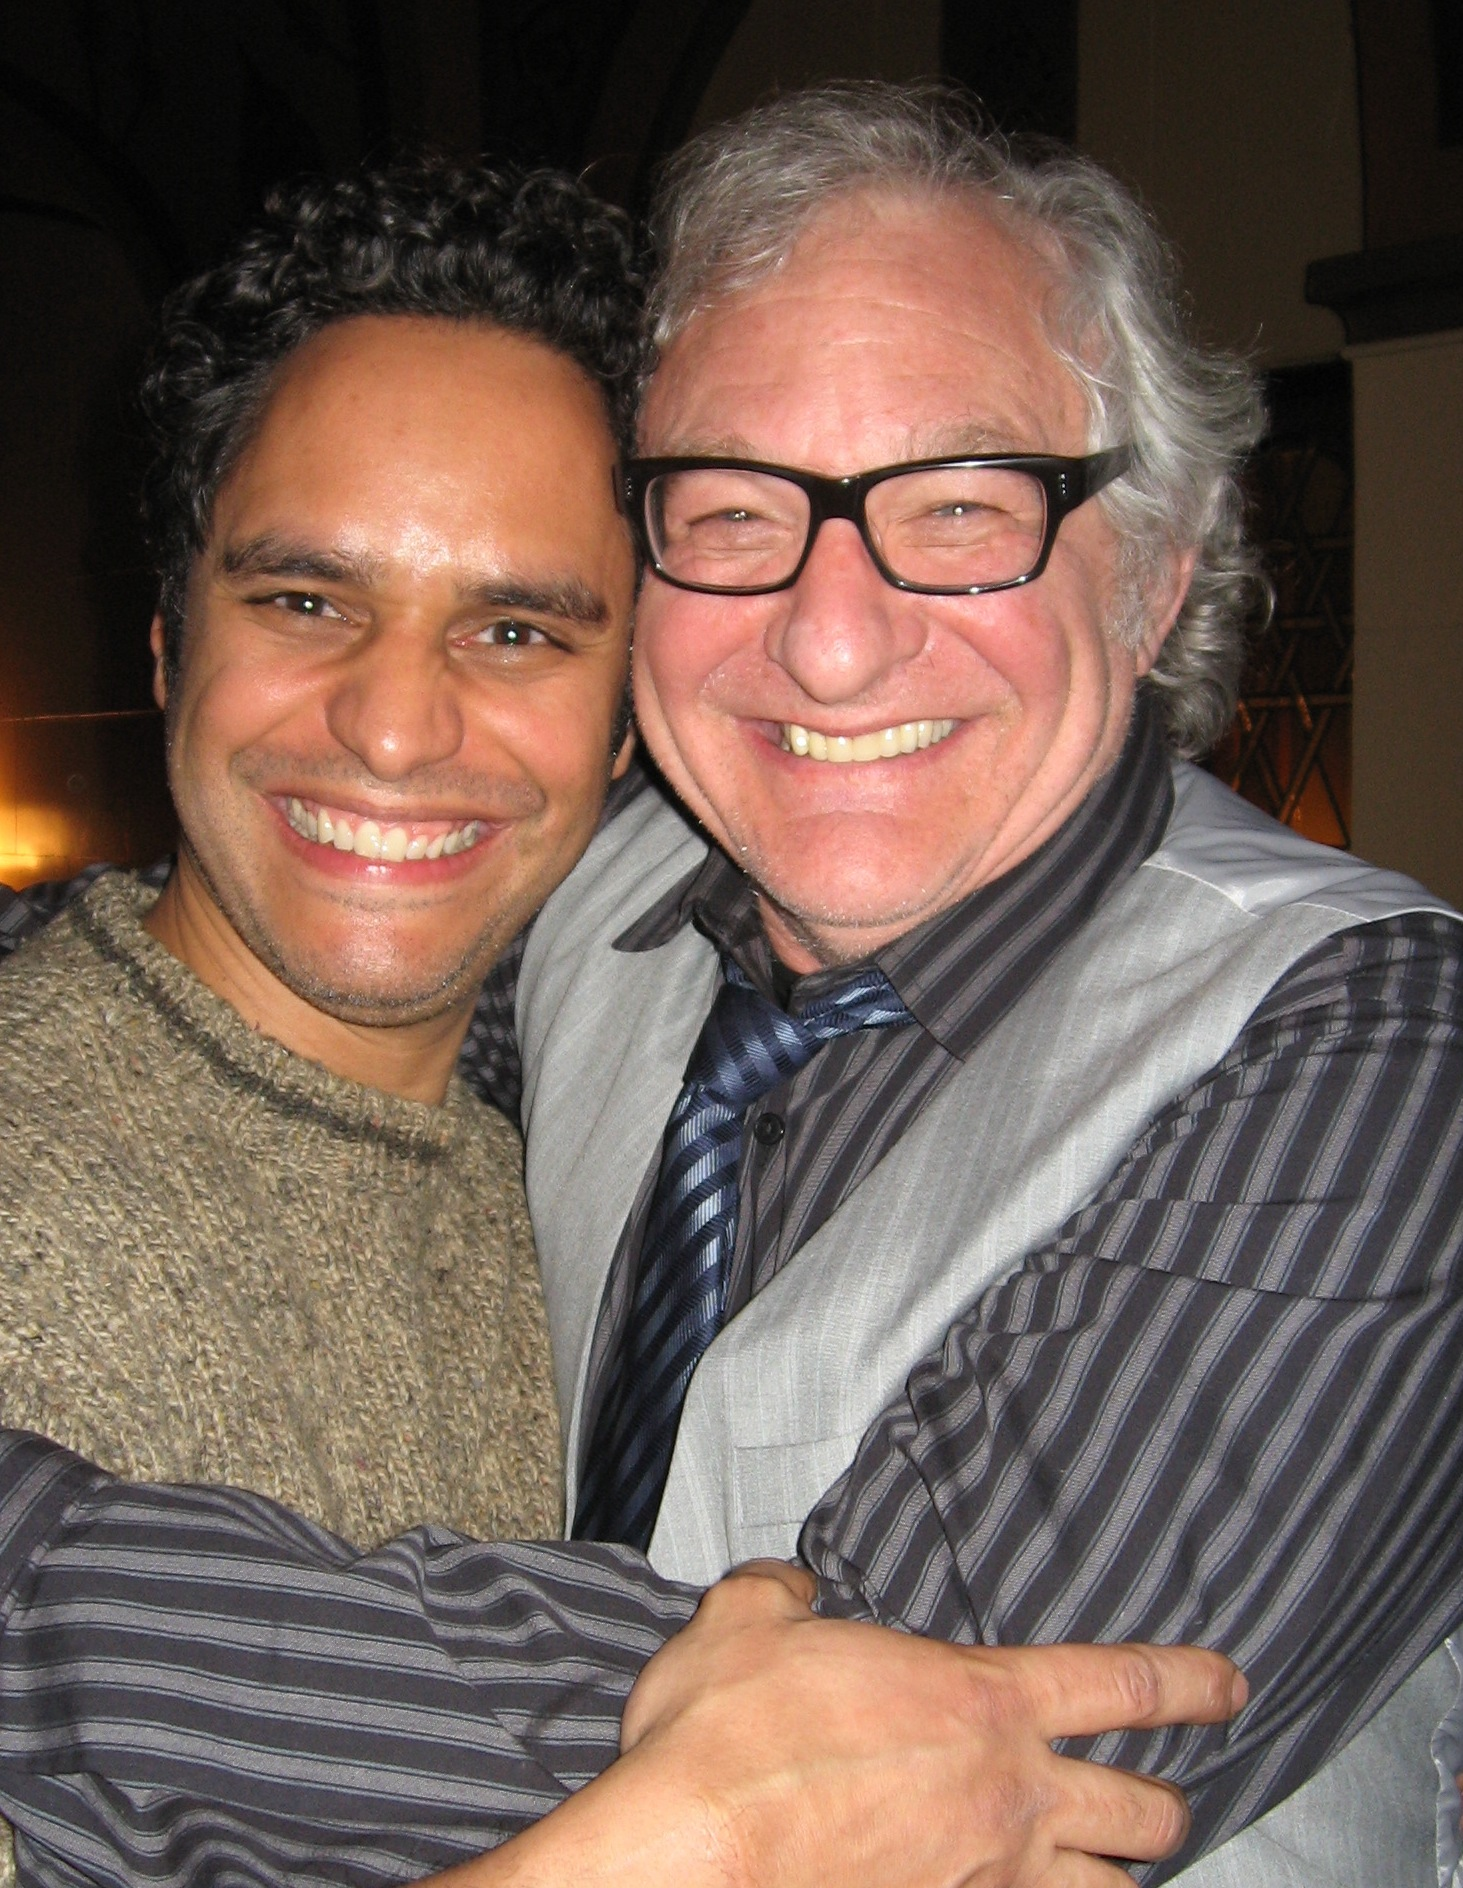 My good buddy Tim Jerome came to the closing party.